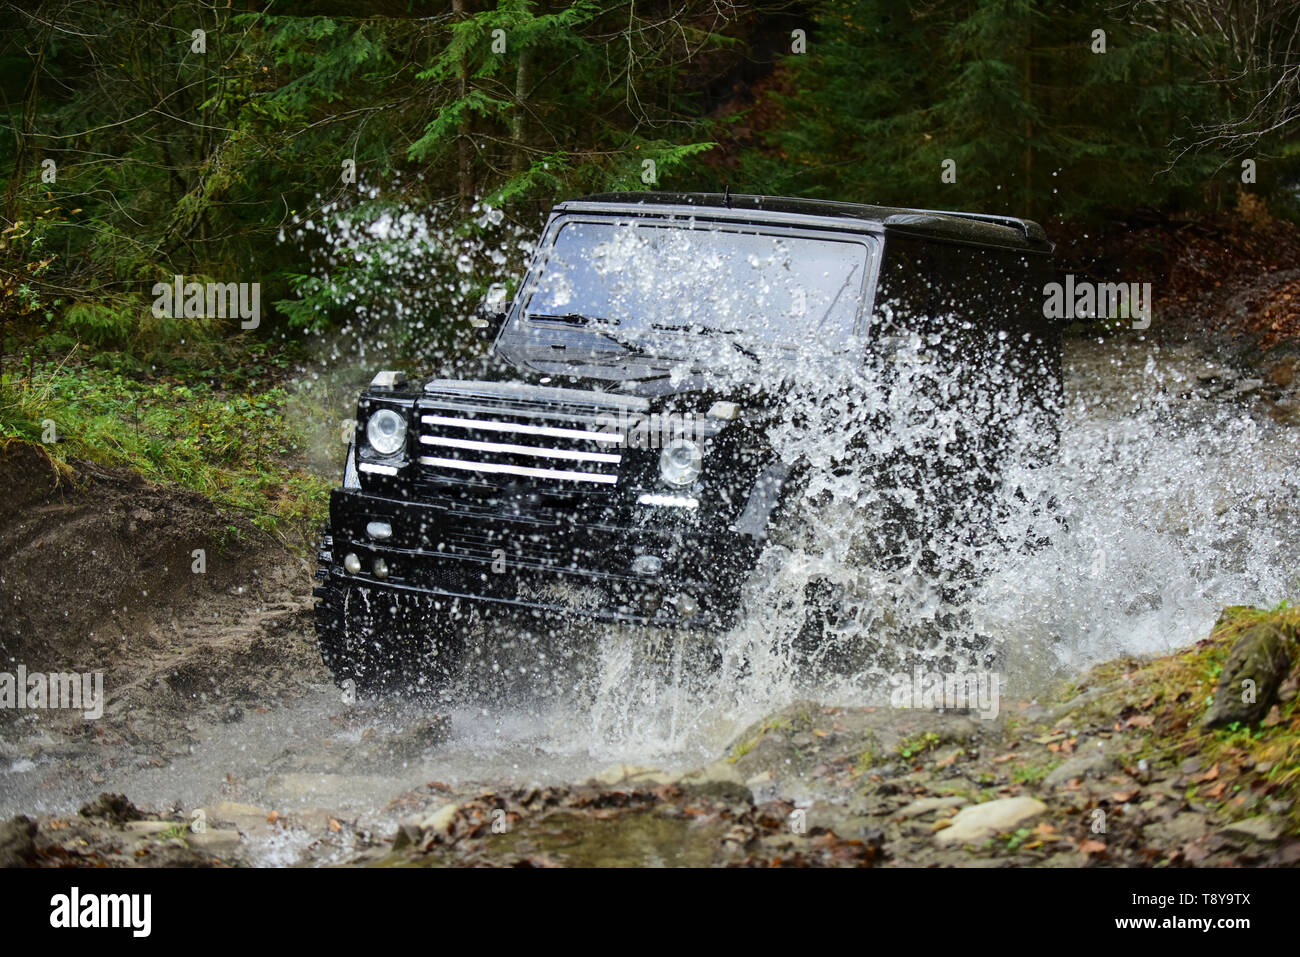 Offroad race in forest. Car racing with creek on way. Extreme driving, challenge and 4x4 vehicle concept. SUV or offroad car in black color crossing - Stock Image